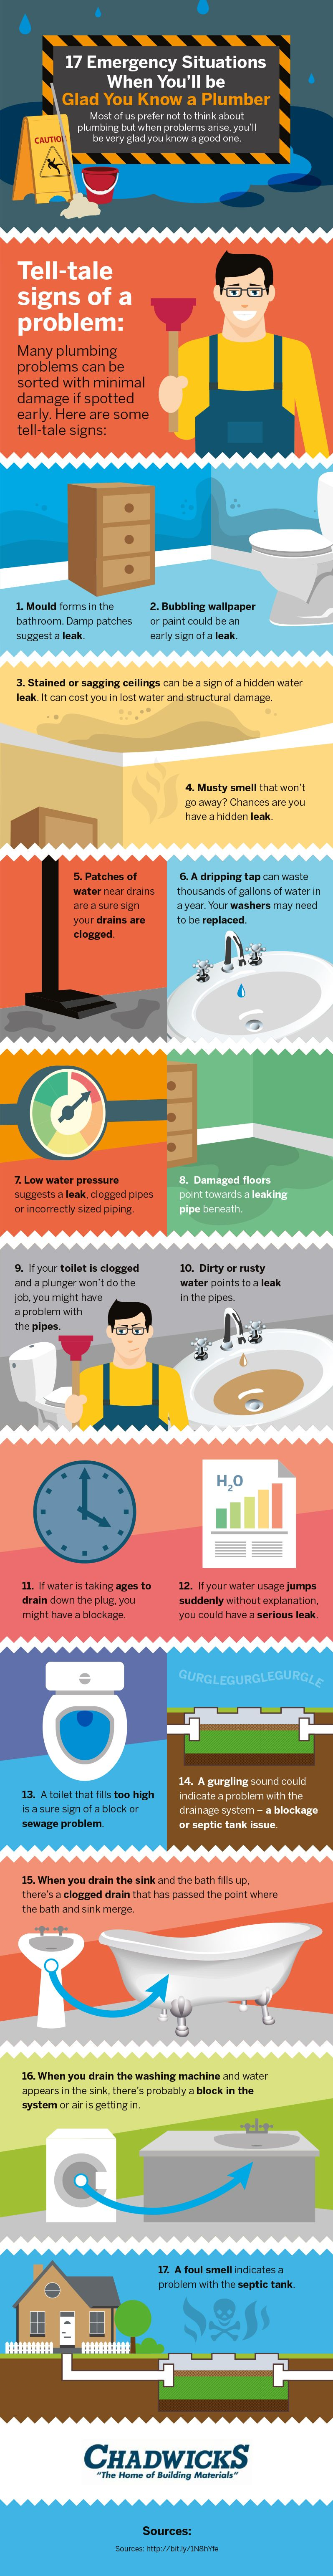 17 Emergency Situations When You'll be Glad of a Plumber